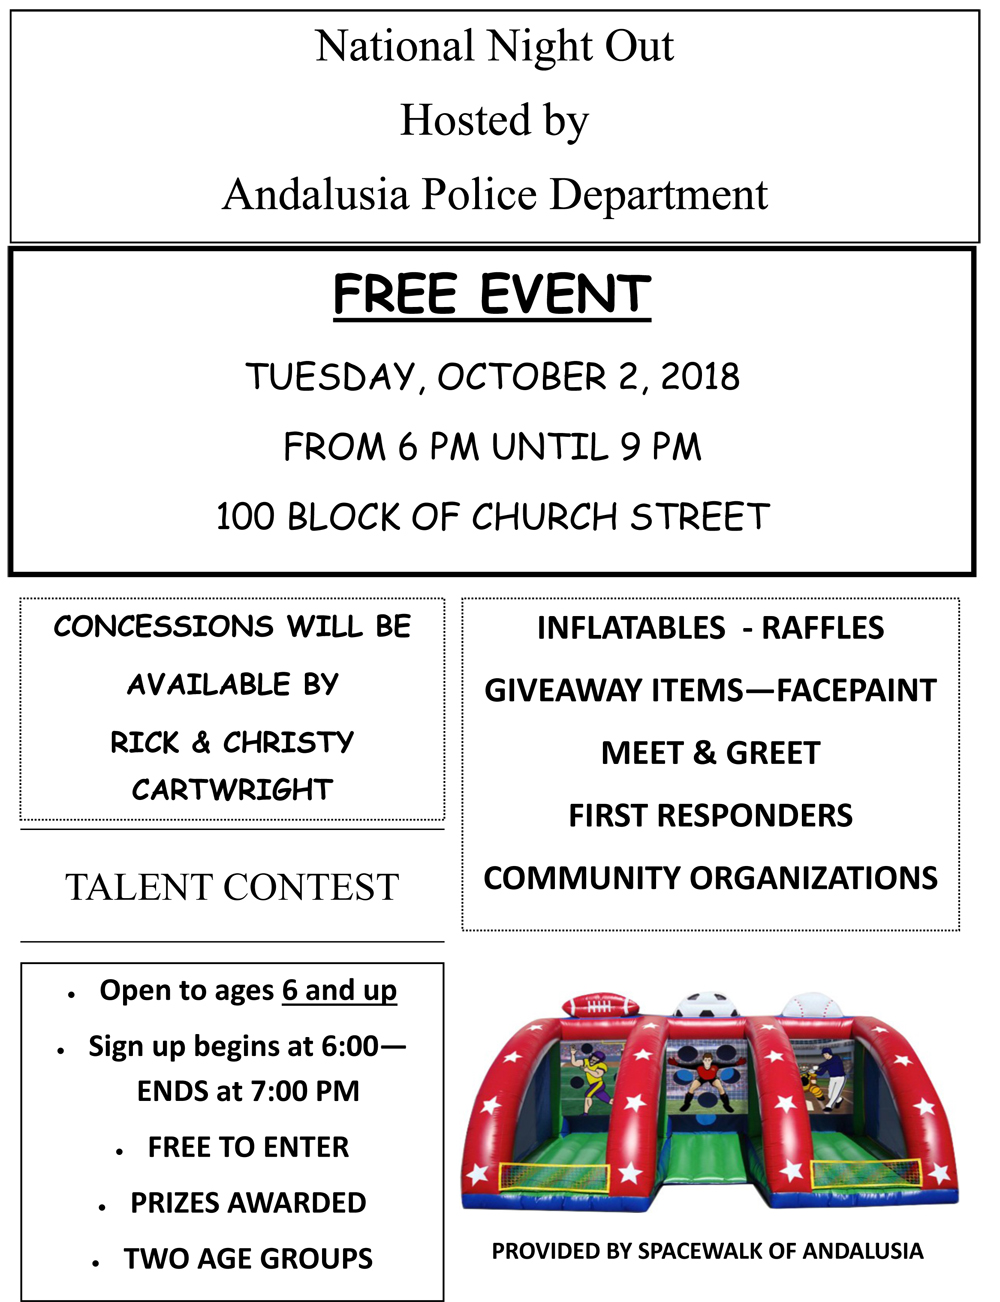 NATIONAL NIGHT OUT FLYER 2018 2